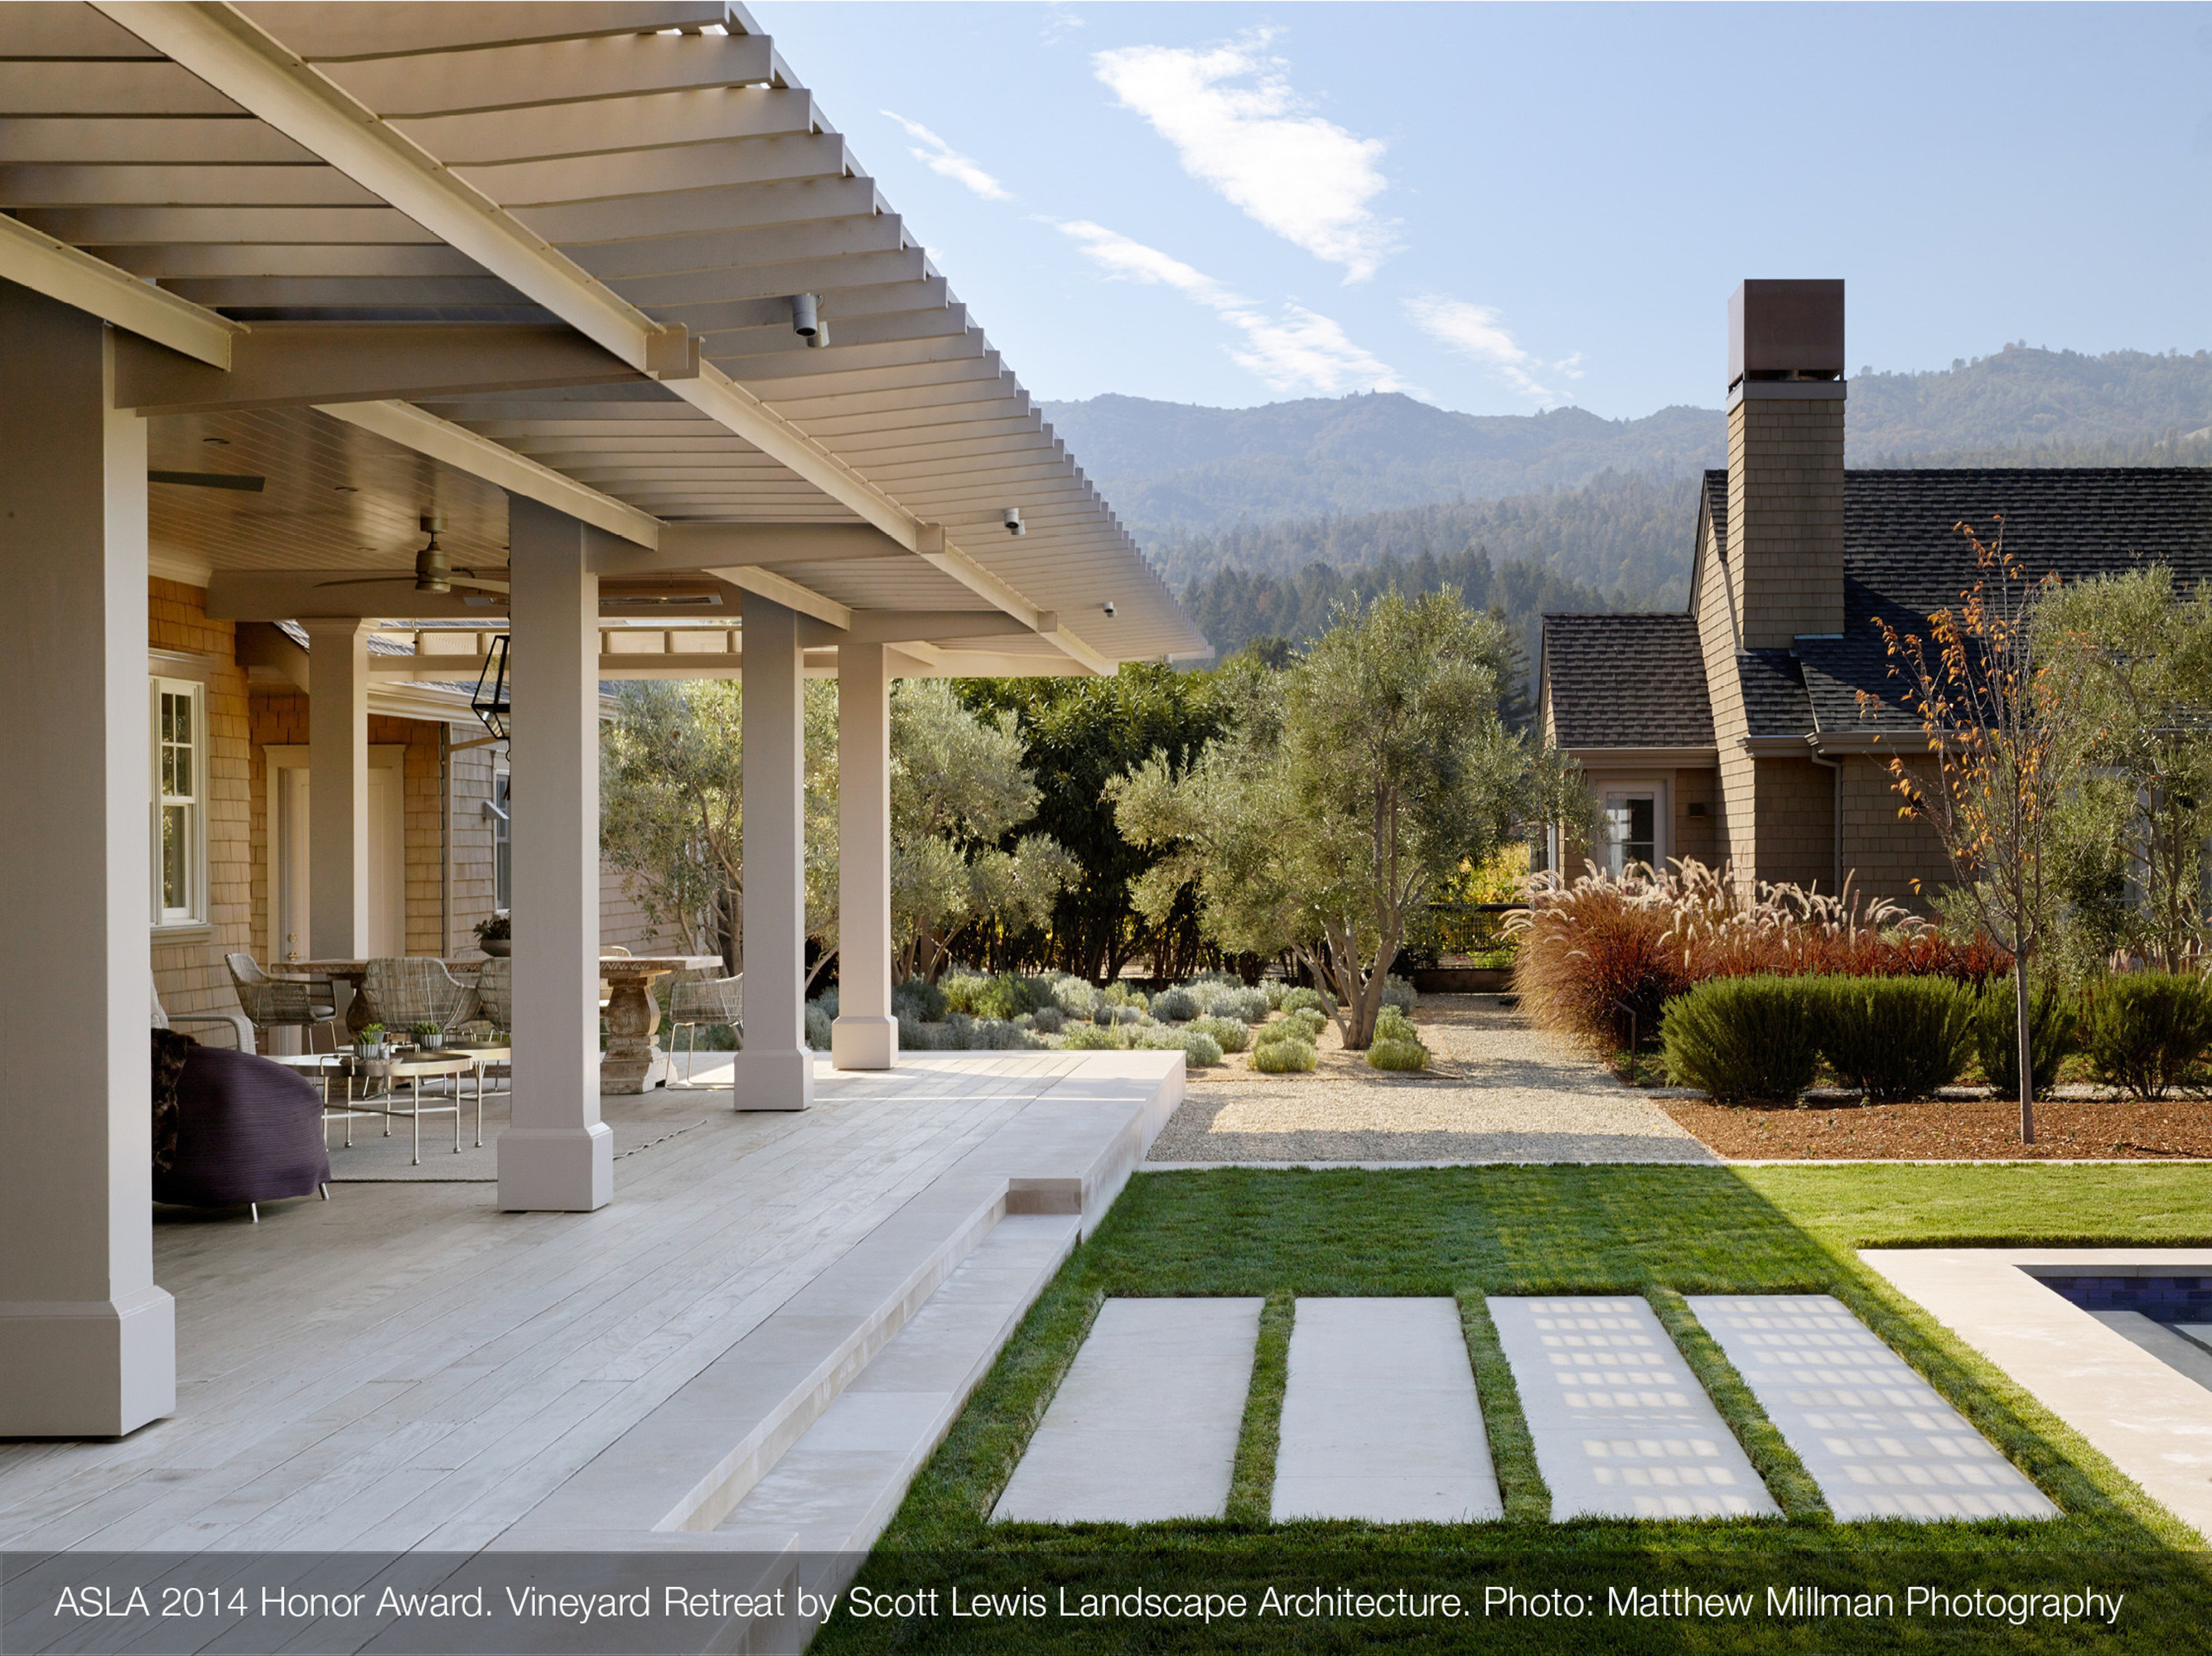 Sustainable and low-maintenance design are the top trends for residential landscape projects, according to the latest survey of the American Society of Landscape Architects.